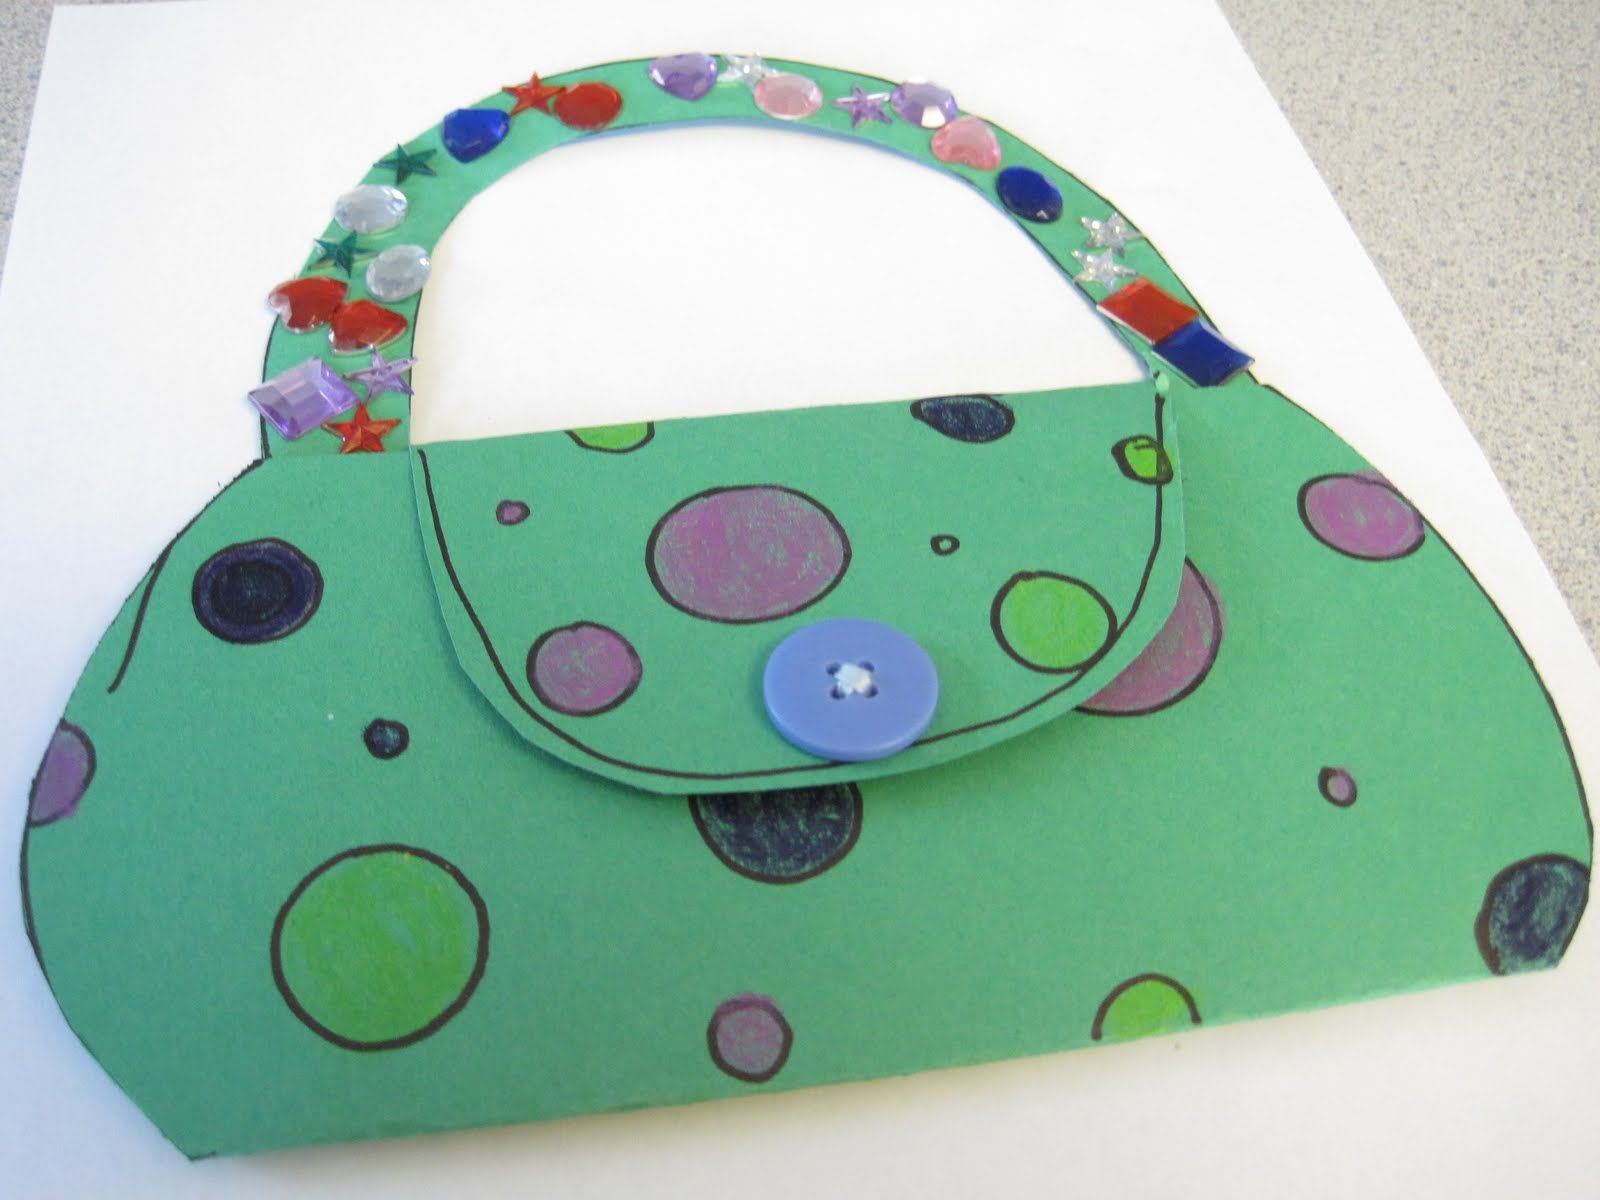 Top cheap crafts in cheap crafts for kids here s a fun for Inexpensive crafts for kids